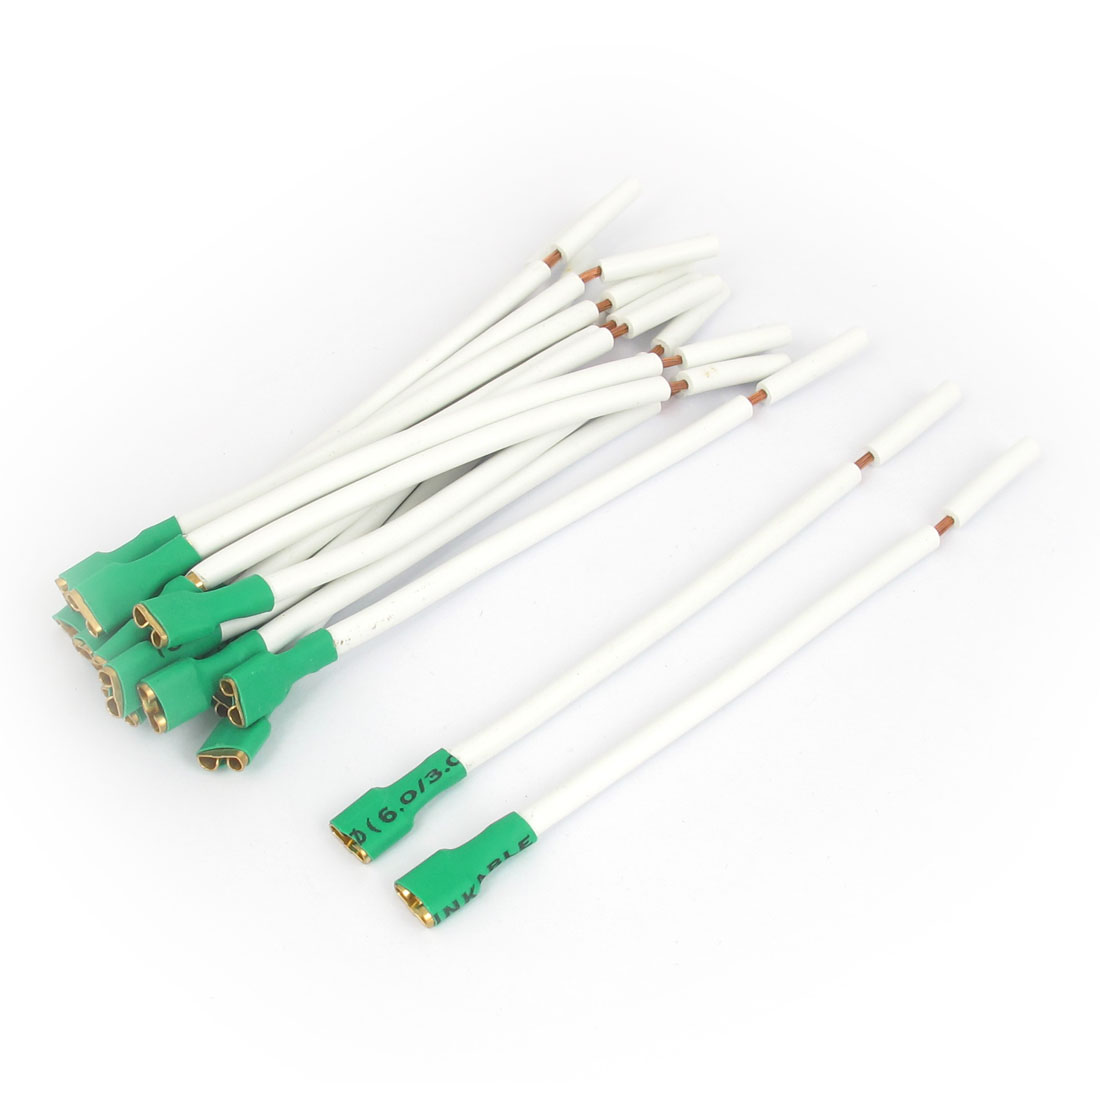 Motorcycle Car Audio Speaker Female Terminal Connector Cable Cord 13cm Length White Green 15pcs